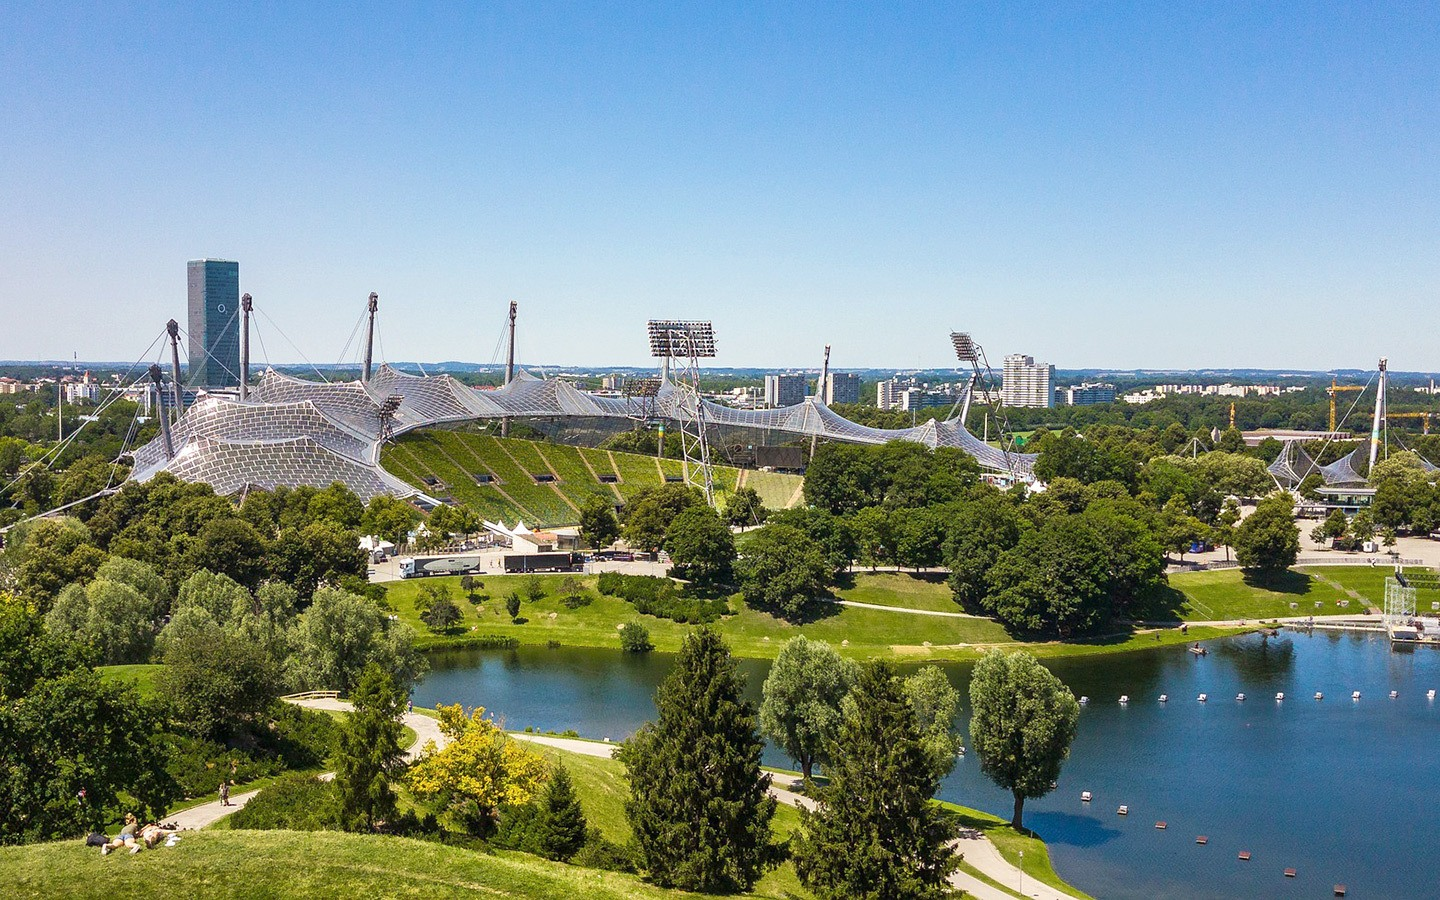 Munich Olympiapark, built for the 1972 summer Olympic Games